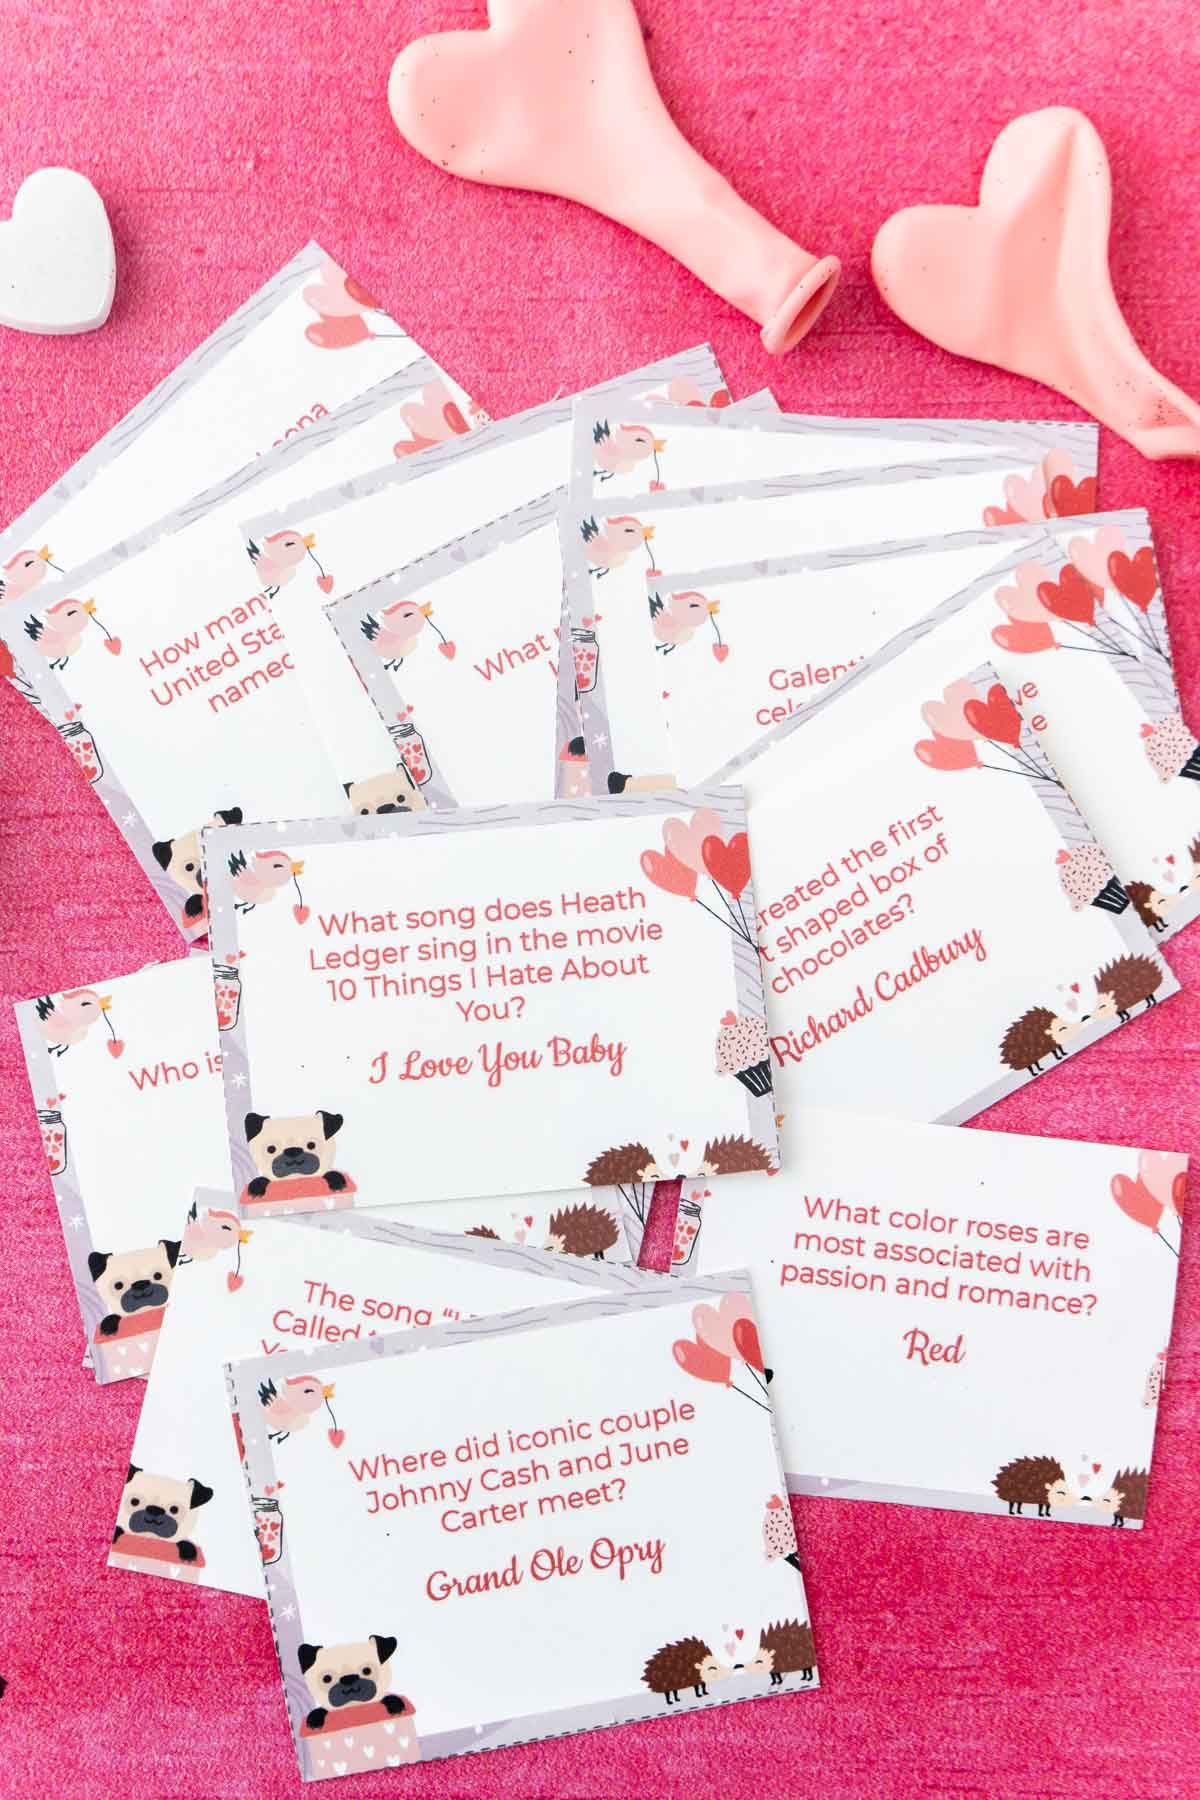 Valentines trivia cards in a pile